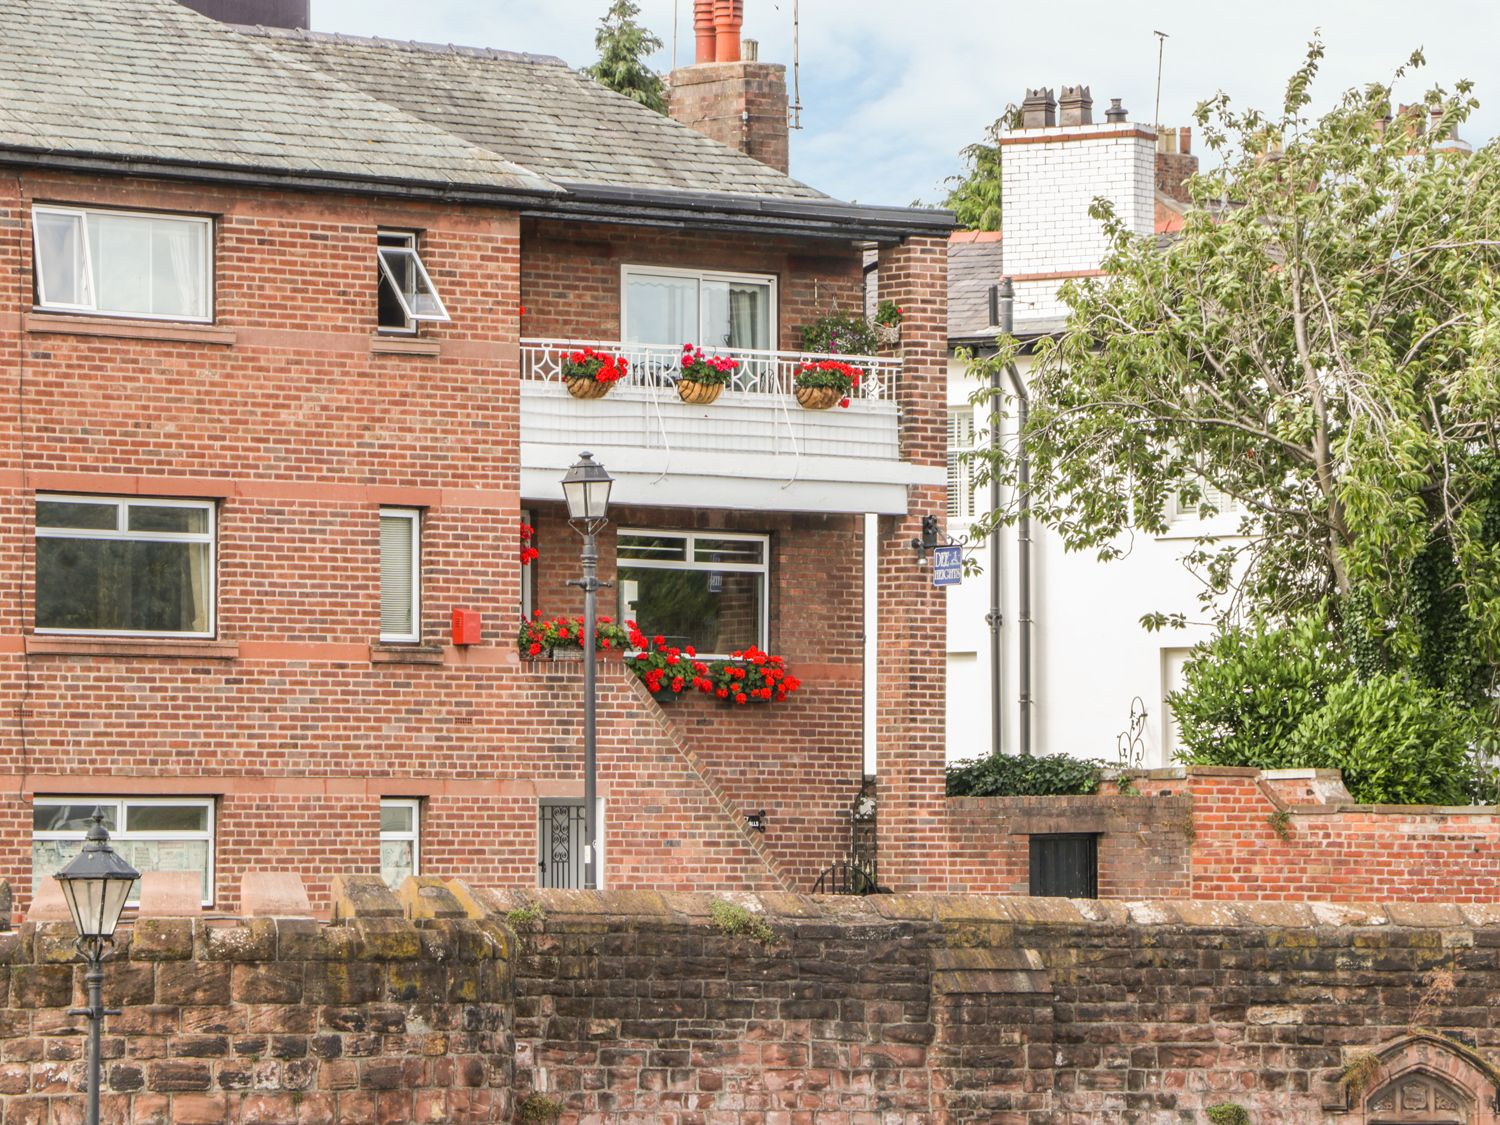 23 City Walls in Chester - sleeps 6 people